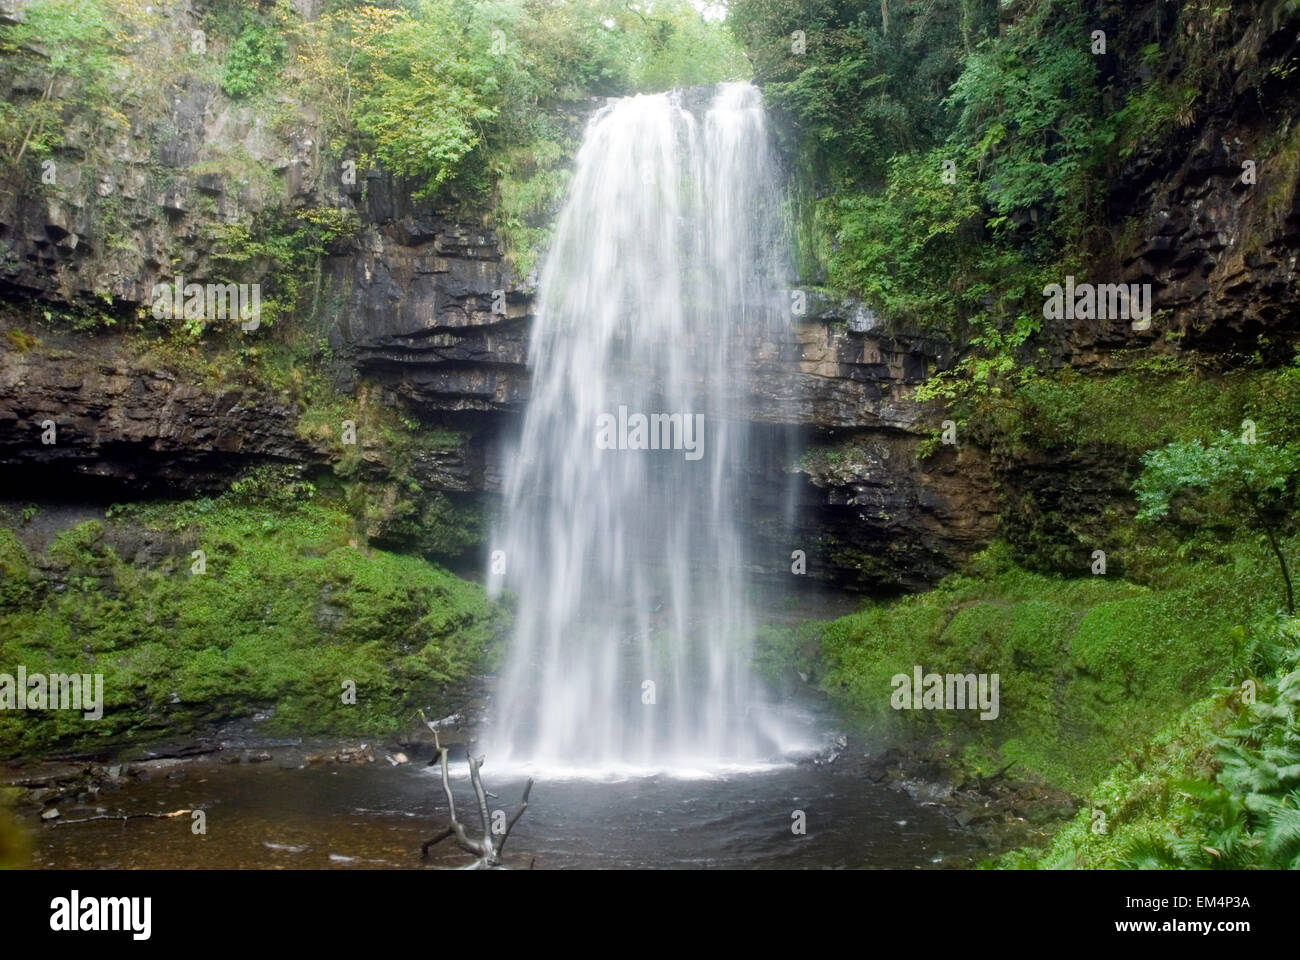 Waterfall Henrhyd Falls in Soutwales England Europe with longtime exposure Stock Photo